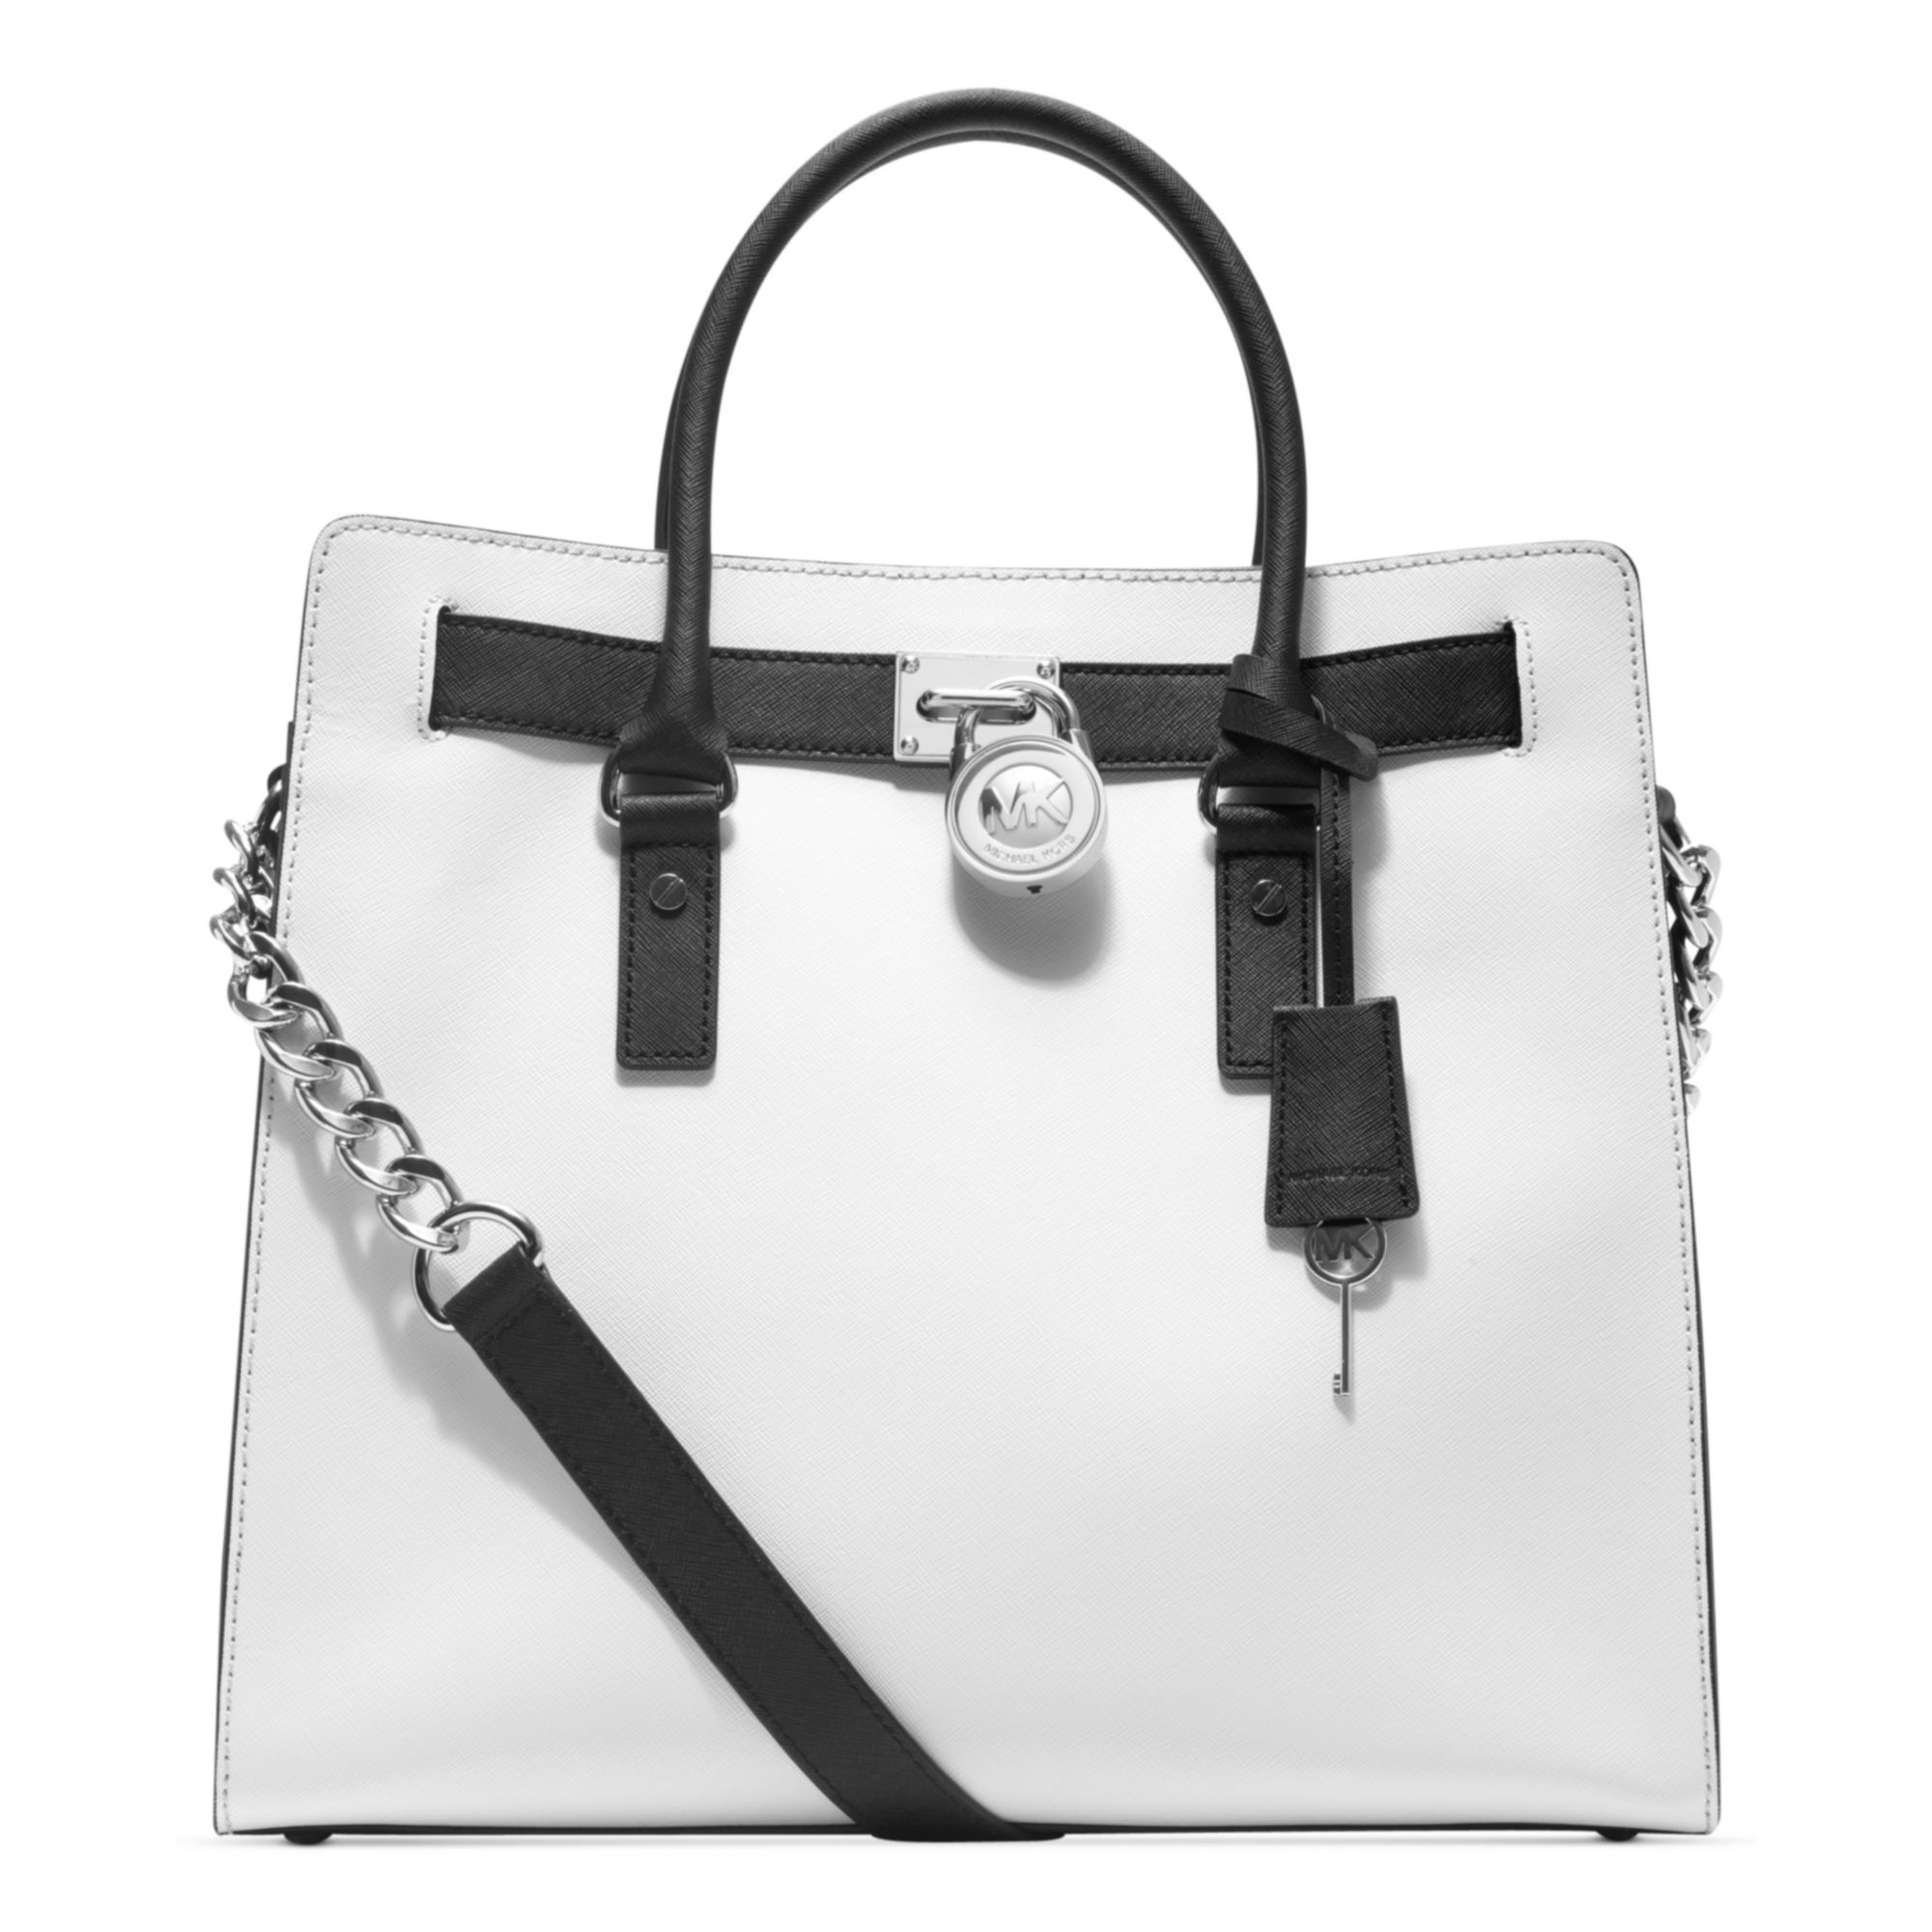 michael kors hamilton saffiano leather tote in white lyst. Black Bedroom Furniture Sets. Home Design Ideas